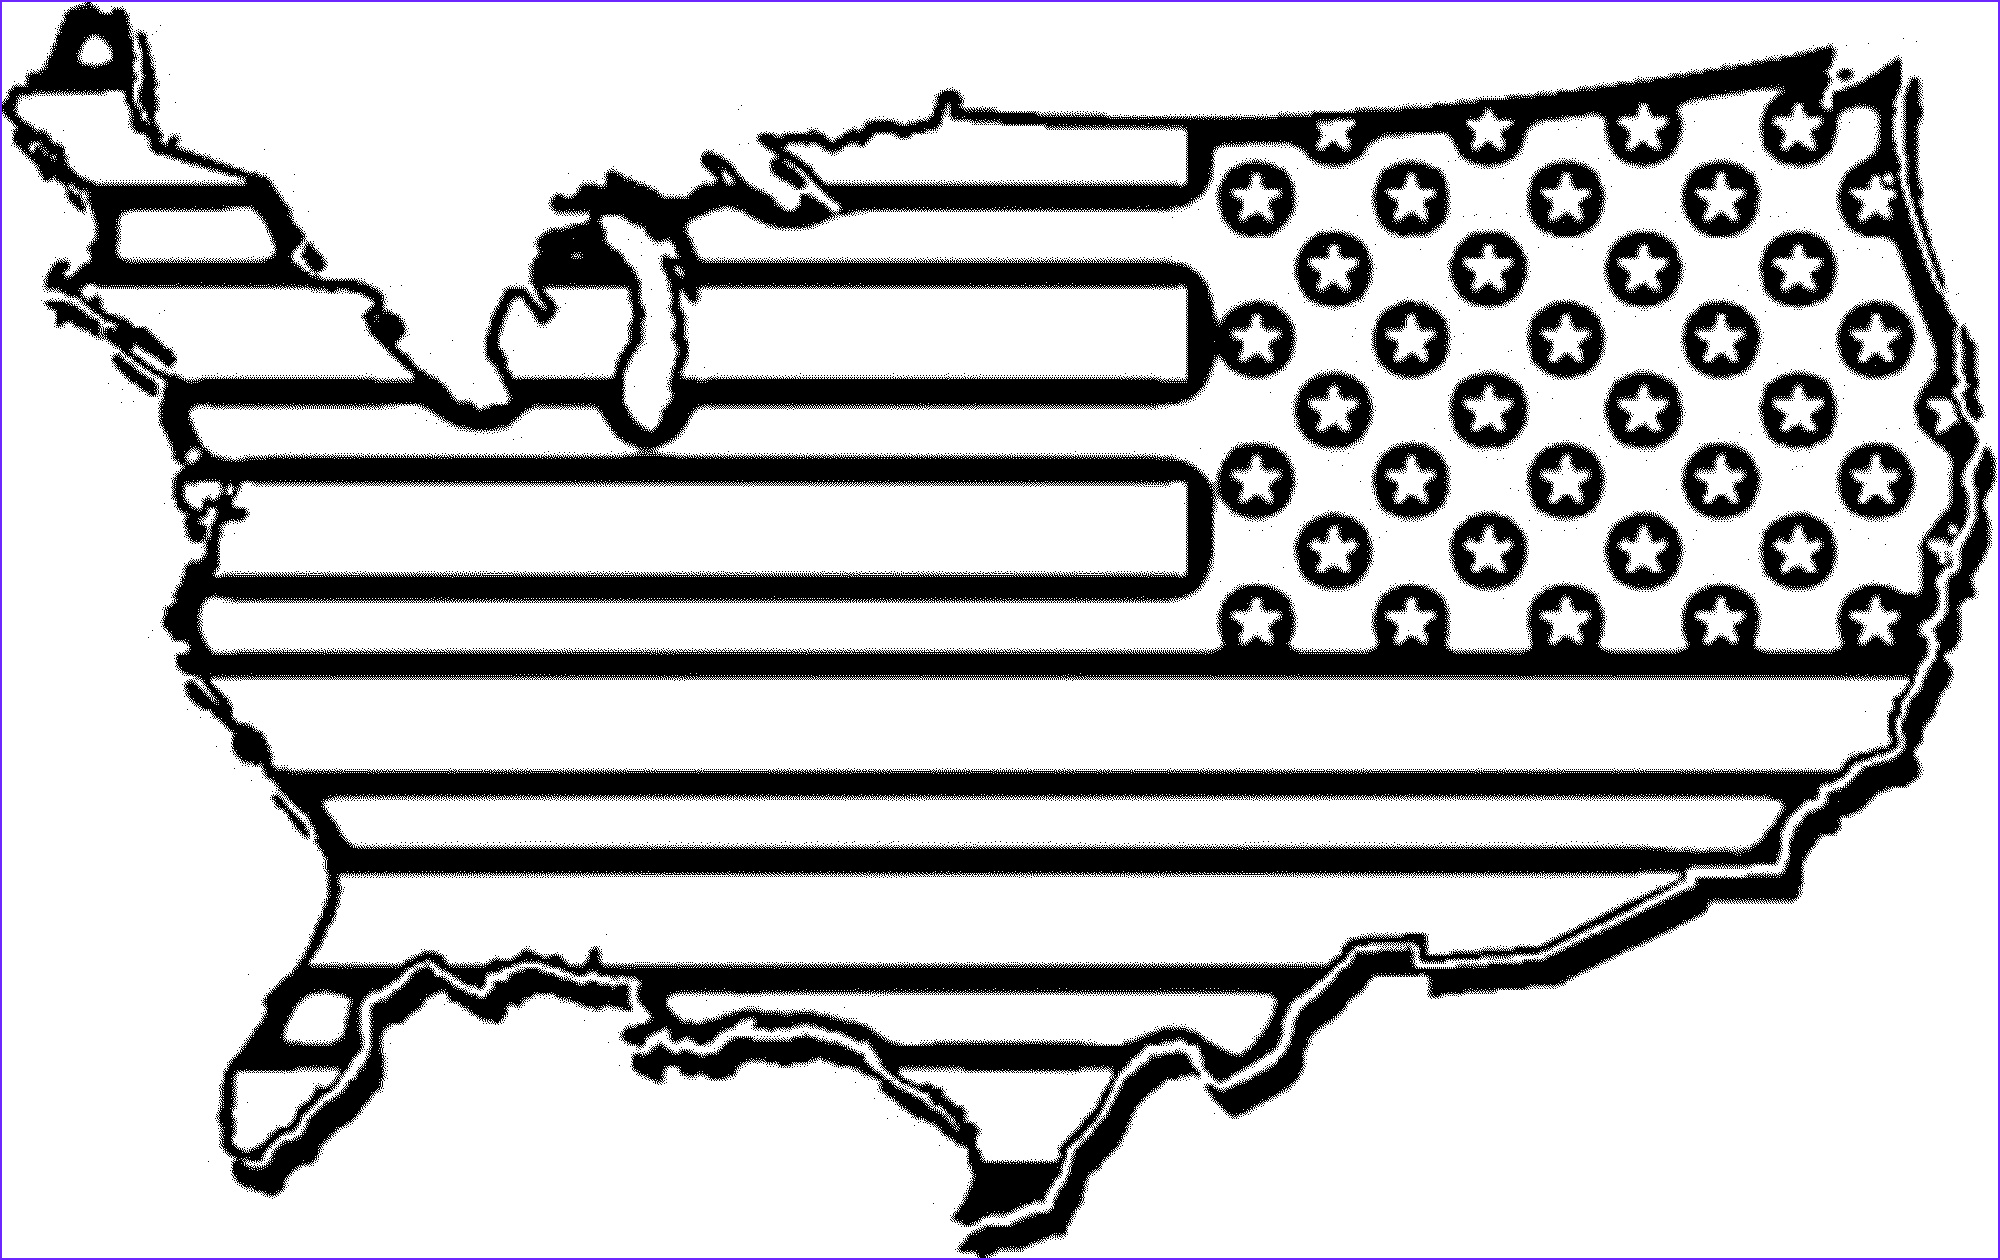 Coloring Page Flags Cool Image American Flag Coloring Page for the Love Of the Country